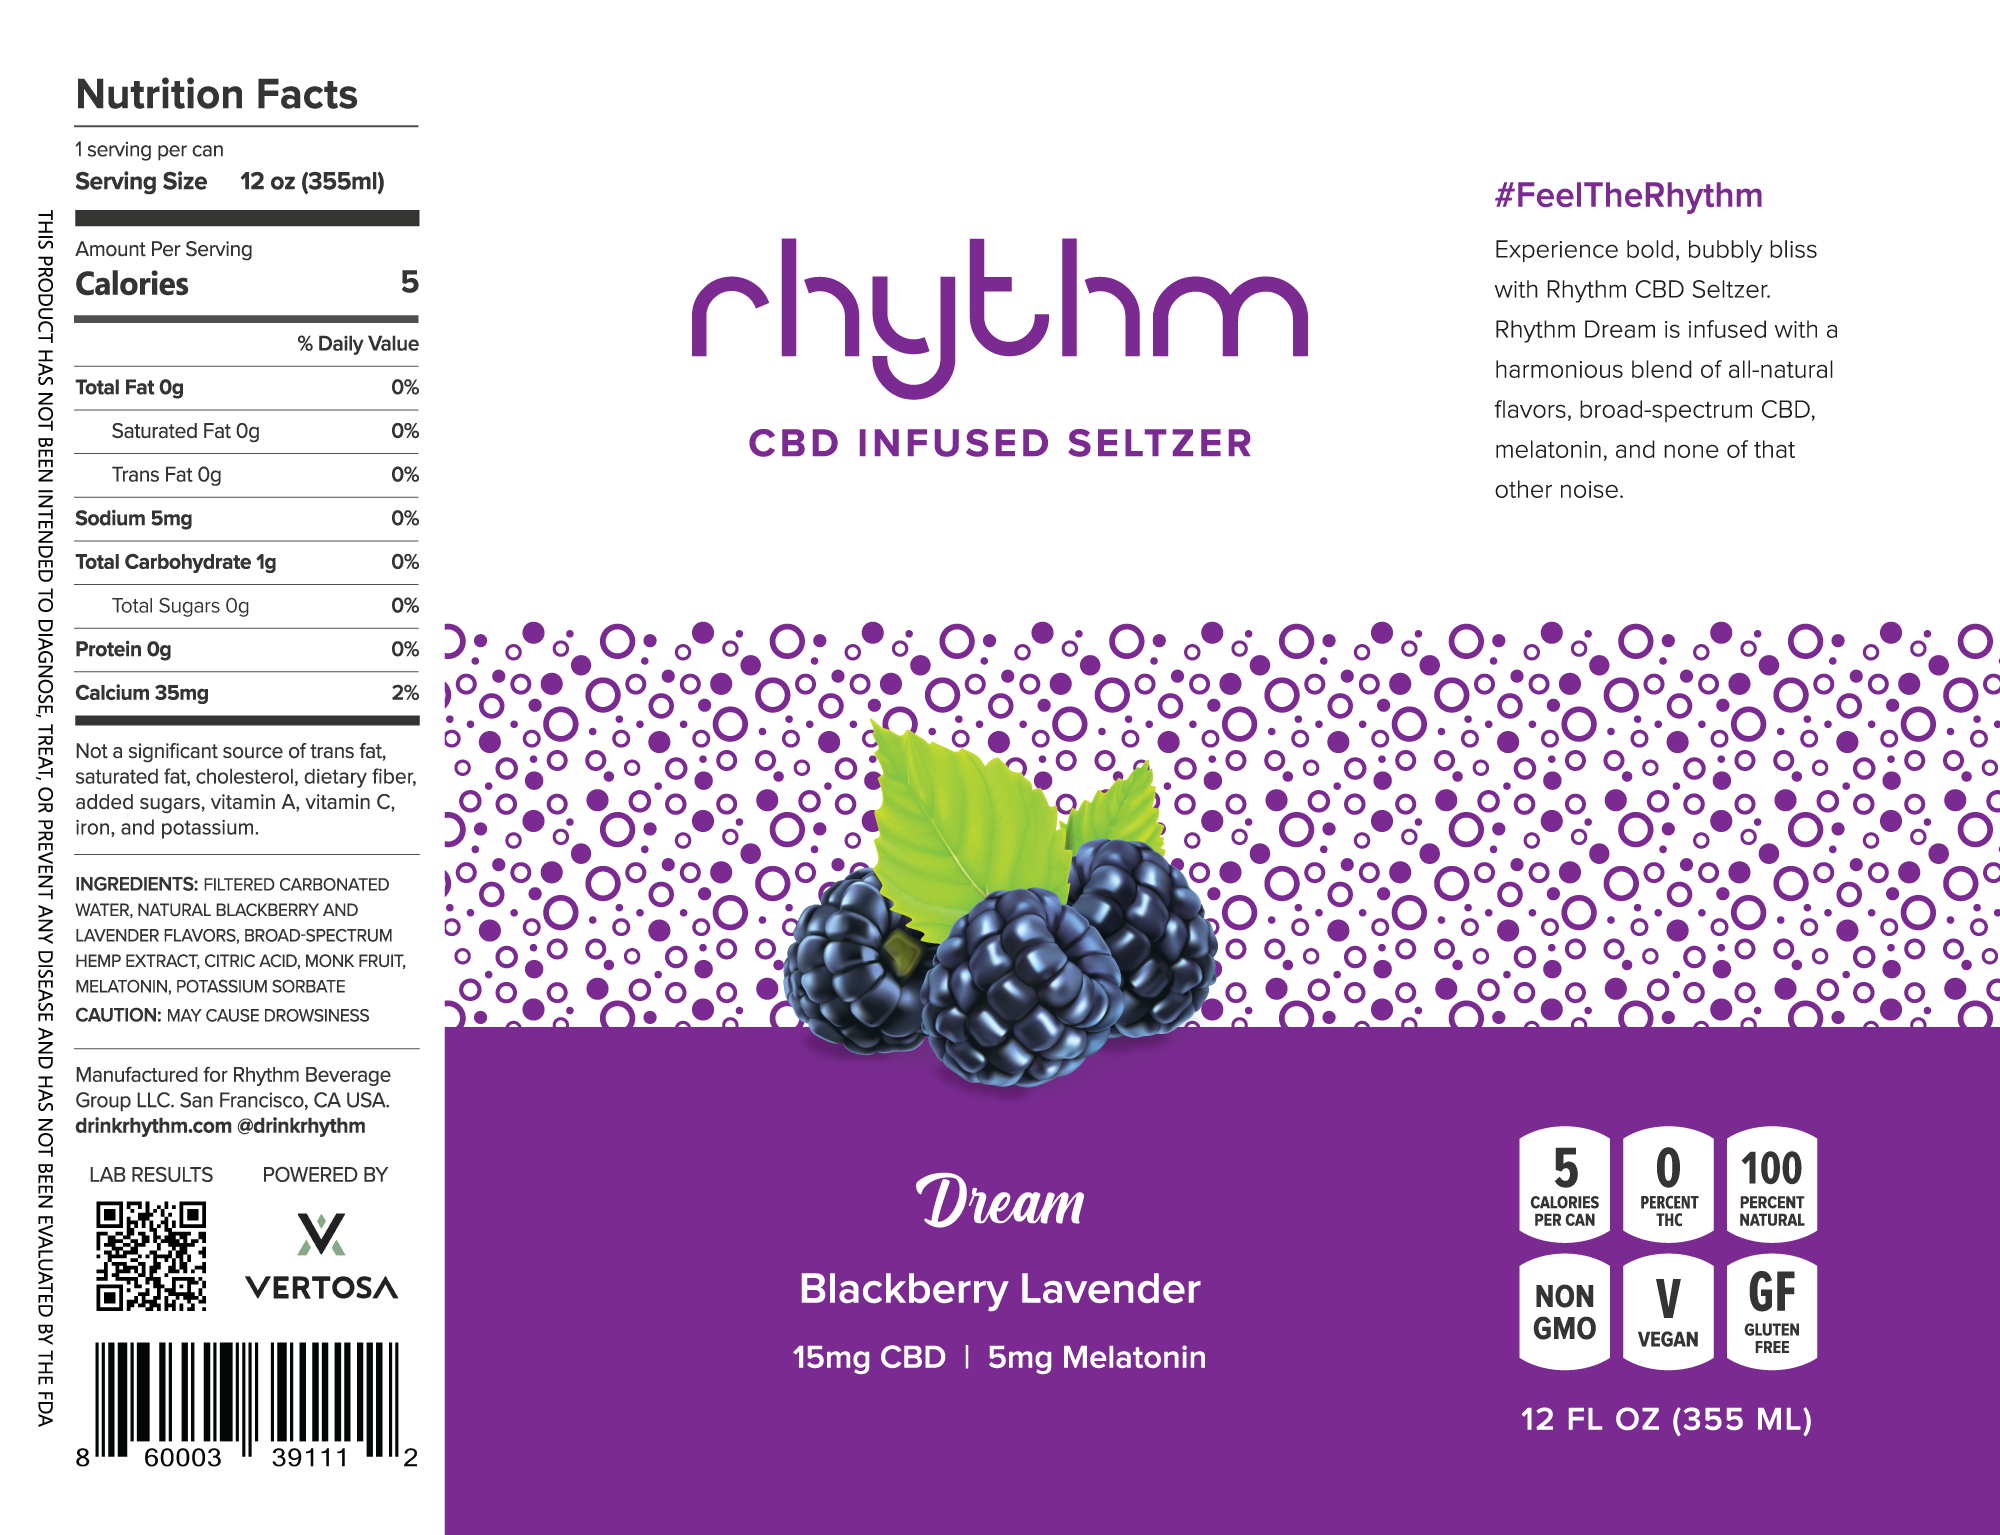 Rhythm Dream CBD Sleep Aid Drink Can Label